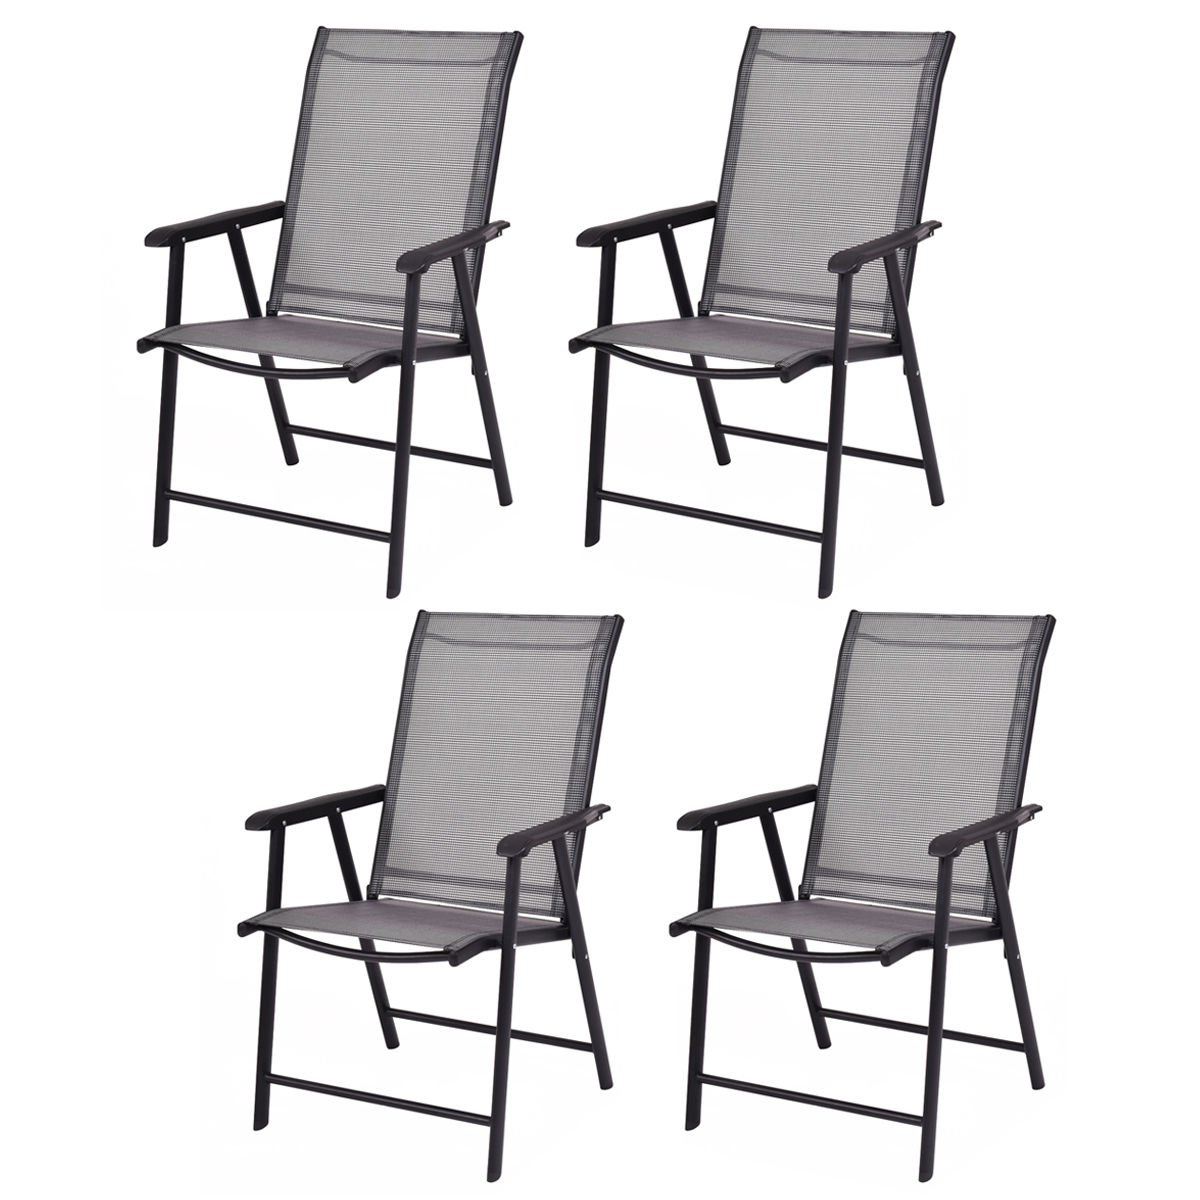 Giantex 4-Pack Patio Folding Chairs Portable for Outdoor Camping, Beach, Deck Dining Chair w/Armrest, Patio Chairs Set of 4, Grey by Giantex